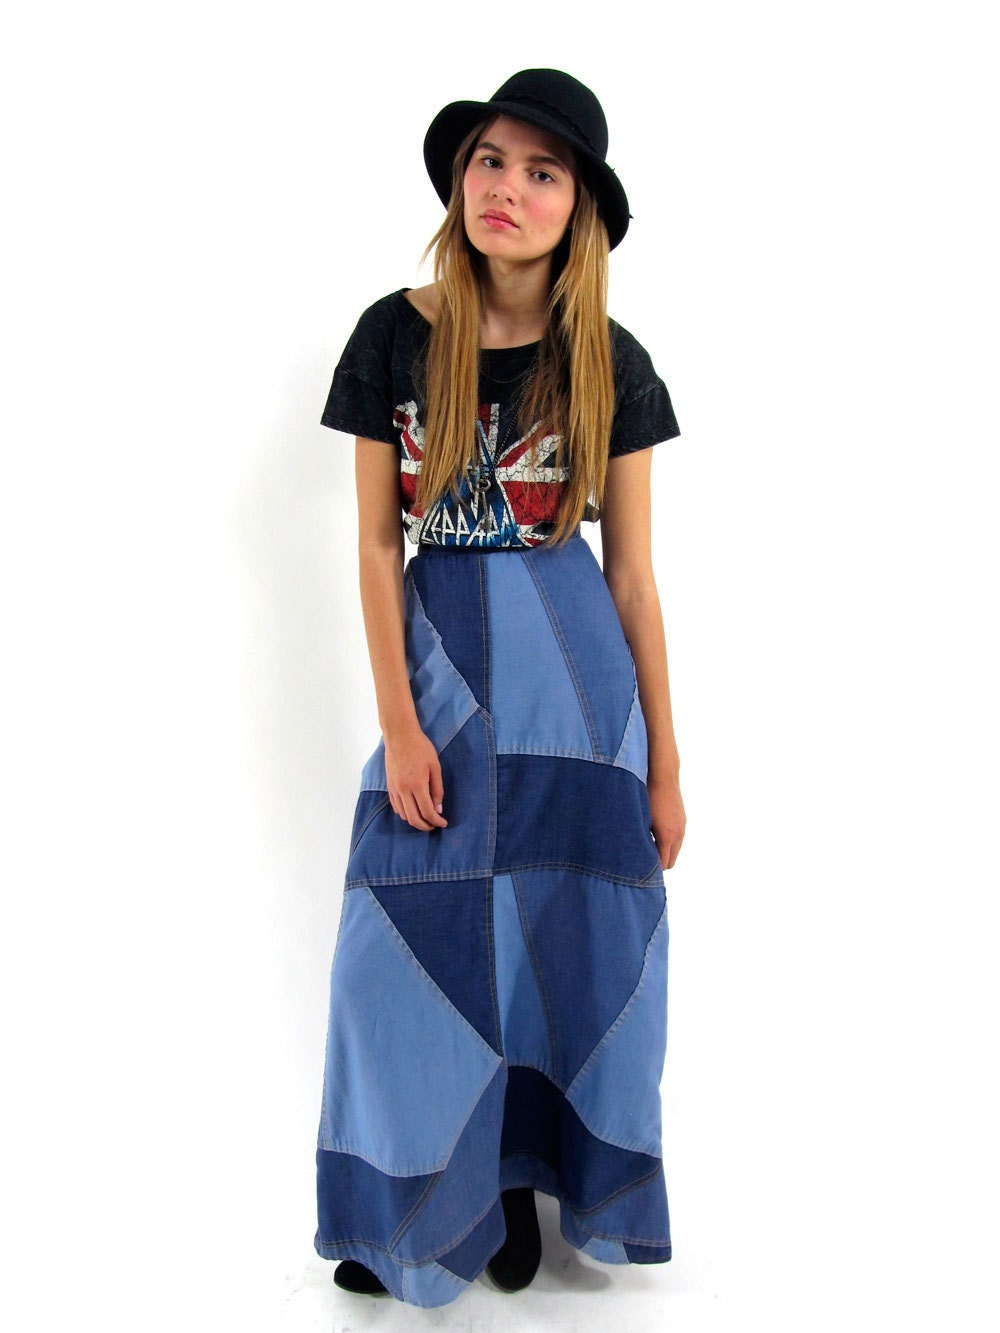 SALE Vintage 70s Patch-Work Denim Skirt High-Waist Maxi